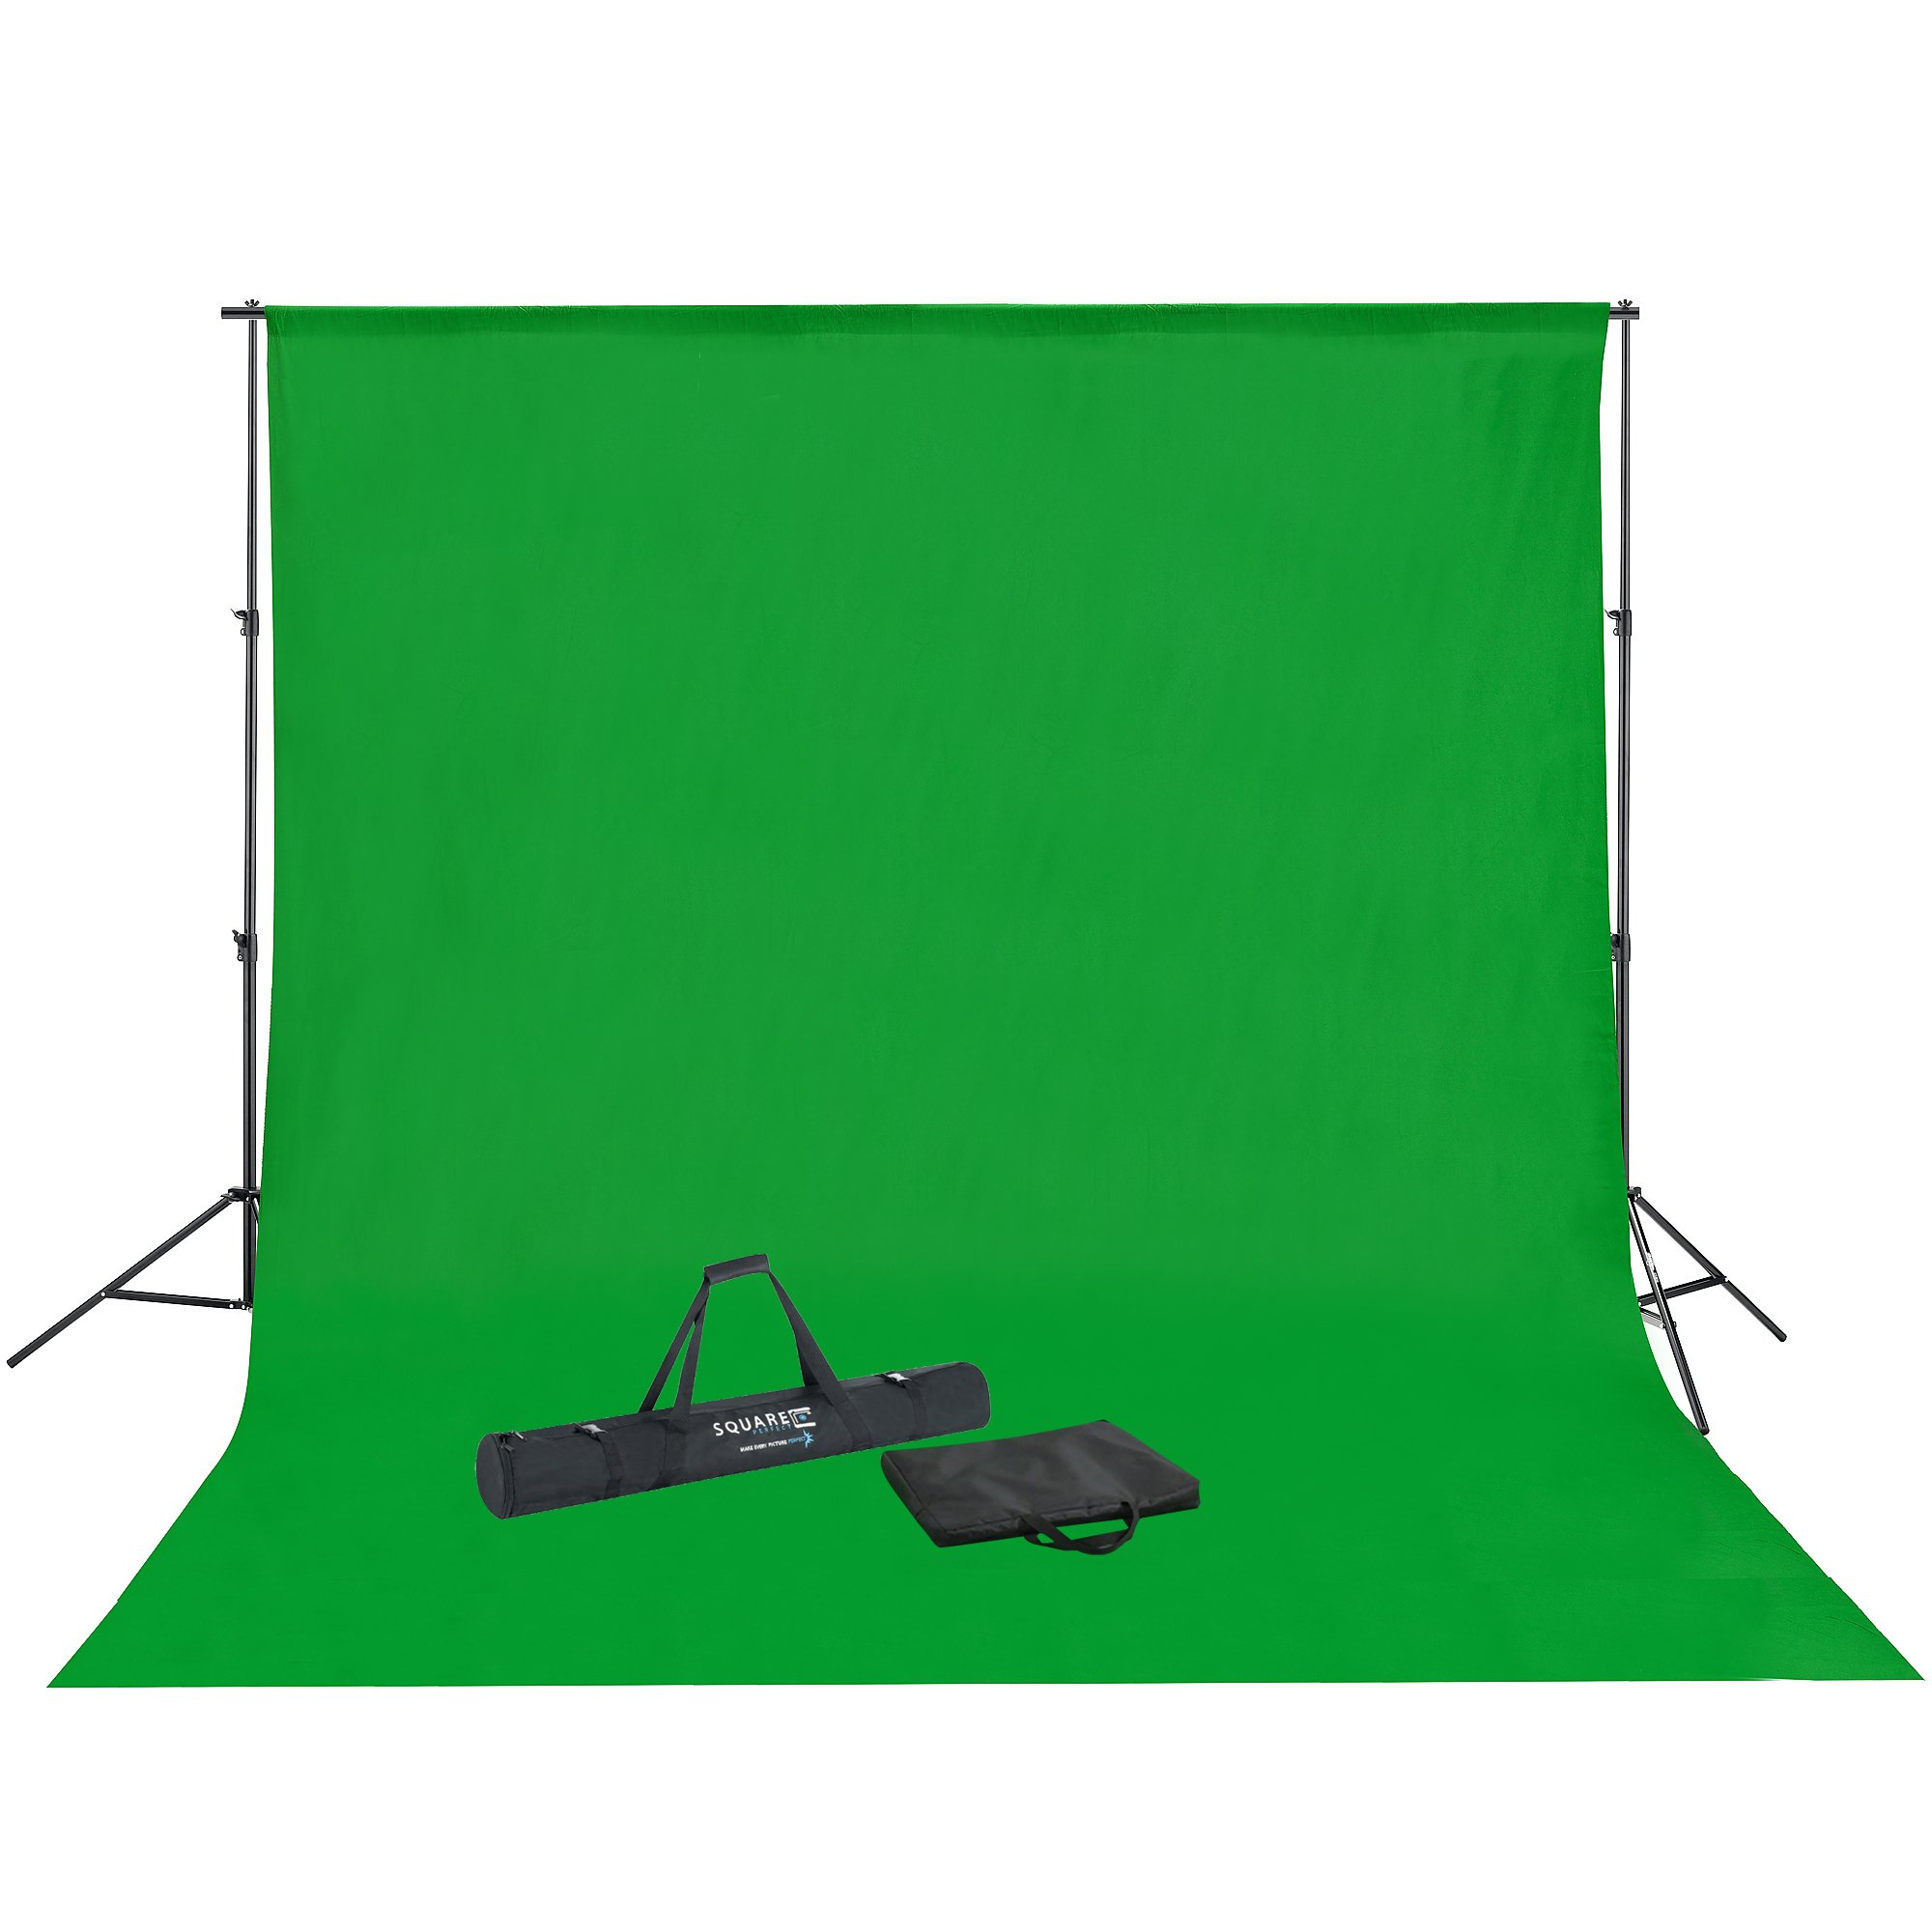 Square Perfect 3065 Sp5000 Professional Quality Background Stand for Chromakey Green Screen and Backdrop by SQUARE PERFECT